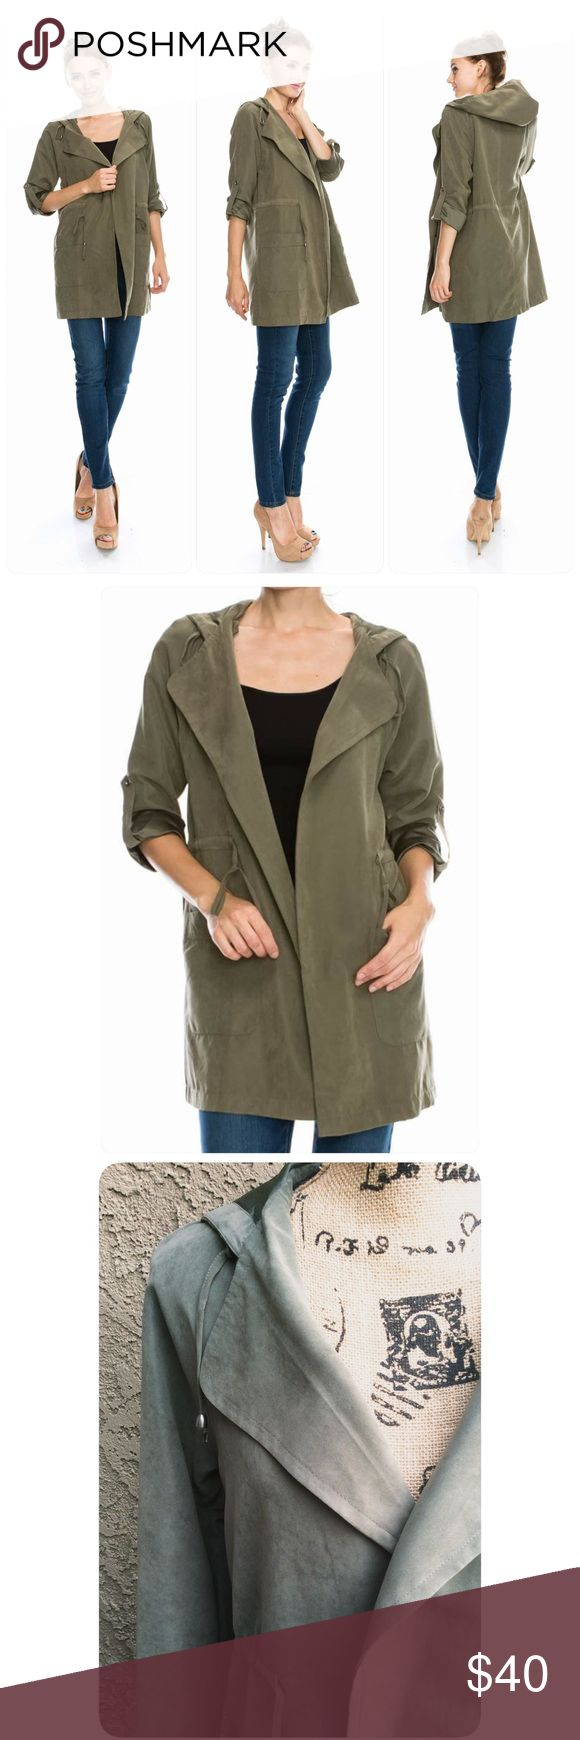 Olive Trench Coat with Hood Olive green Super Comfy and very soft Light Trench coat with hood. Roll up sleeves with button. Pockets up front. These beautiful jackets came without a tag. Different sizes available 😊 Jackets & Coats Trench Coats